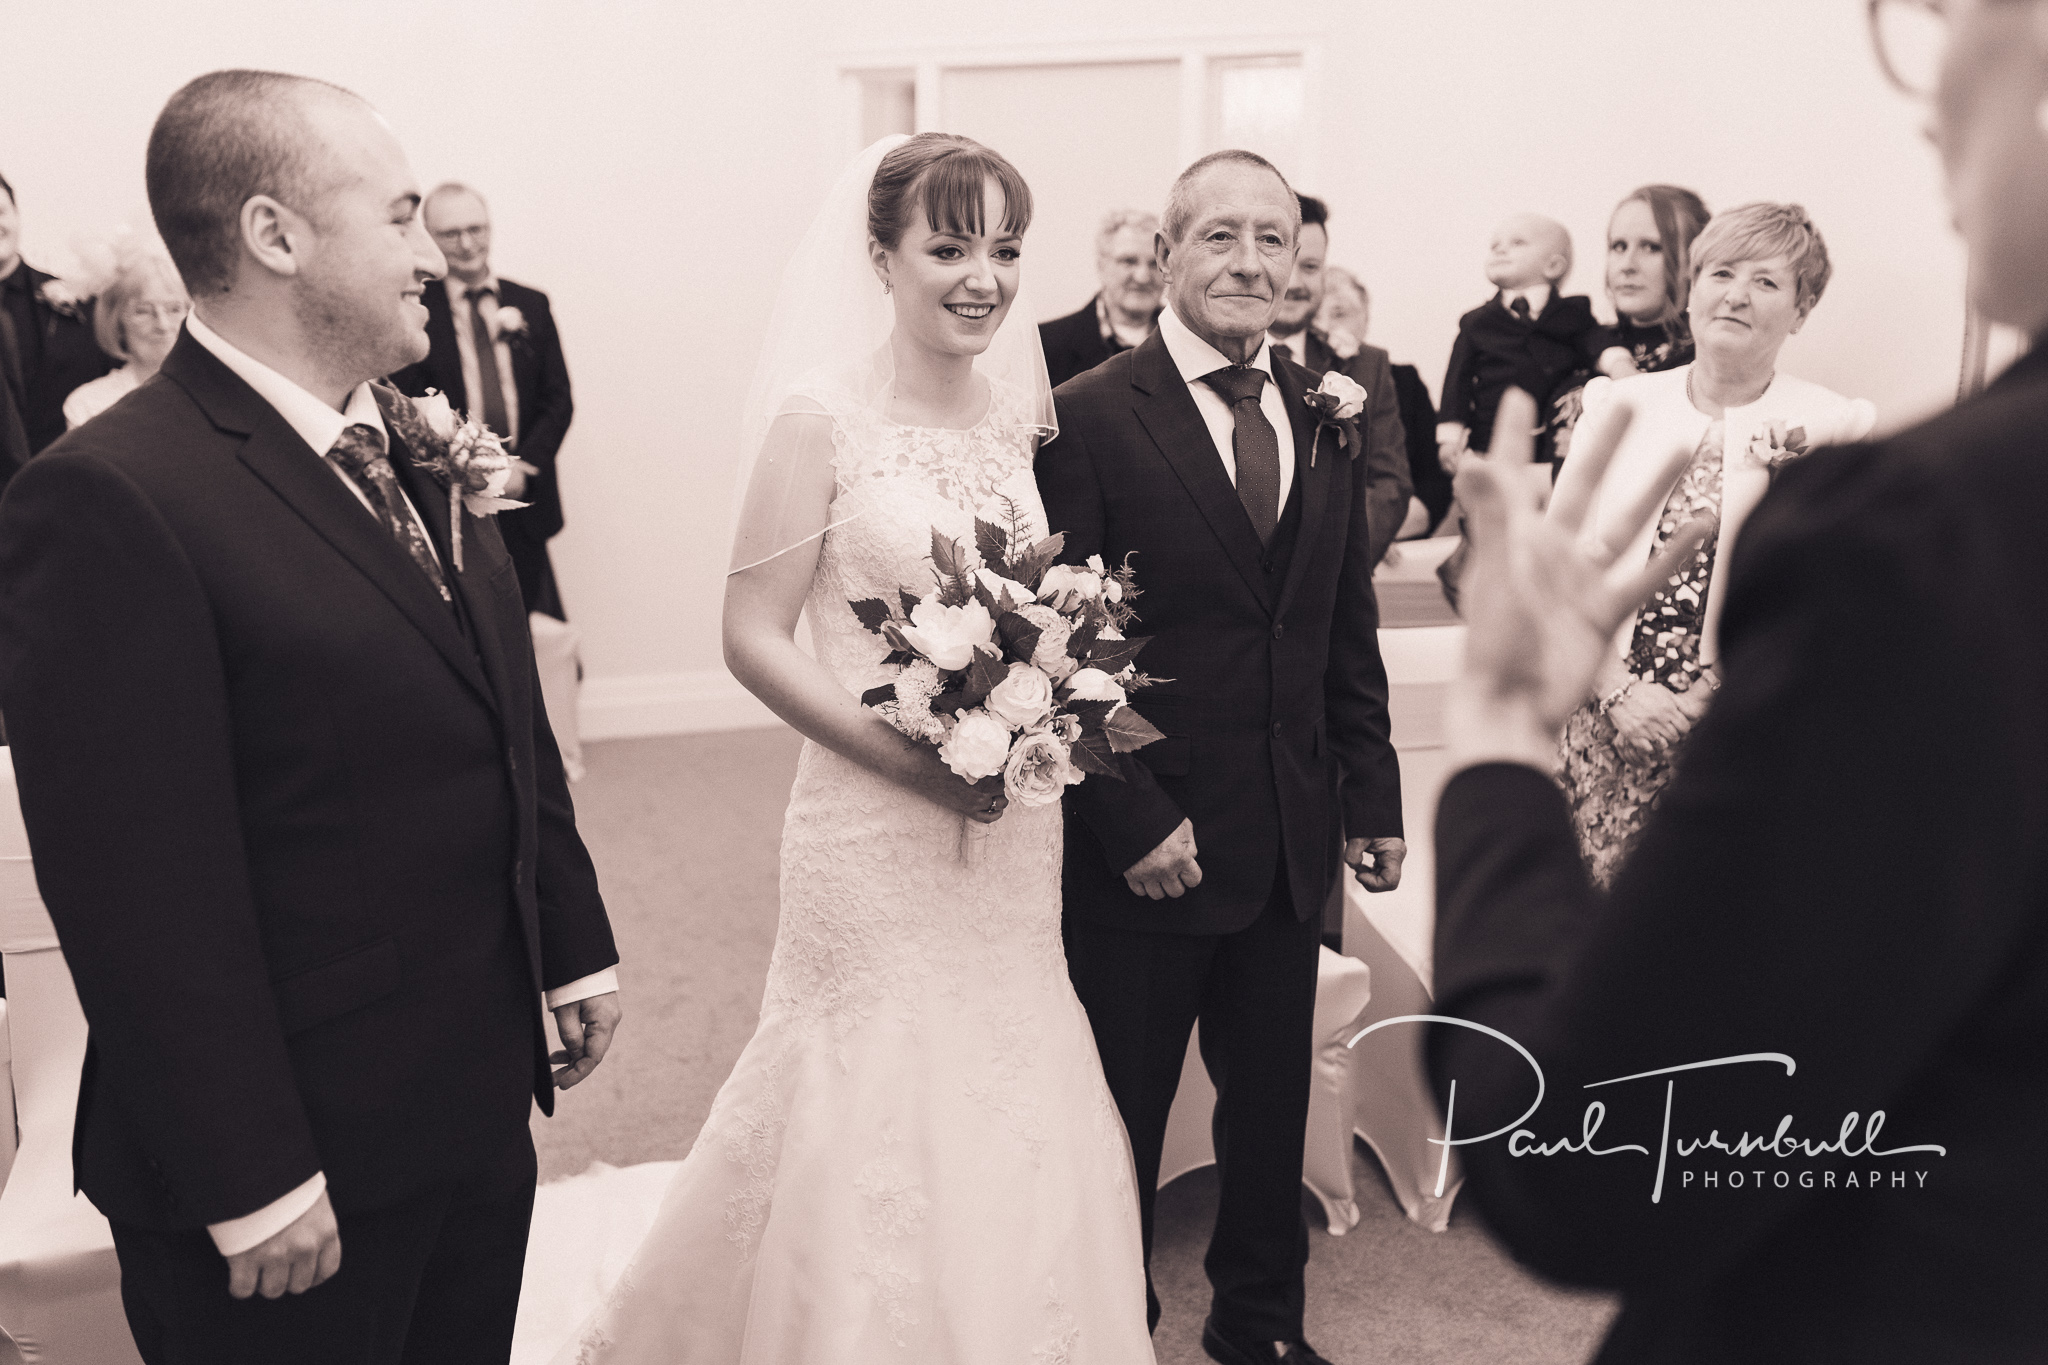 wedding-photographer-pontefract-yorkshire-laura-keanu-027.jpg